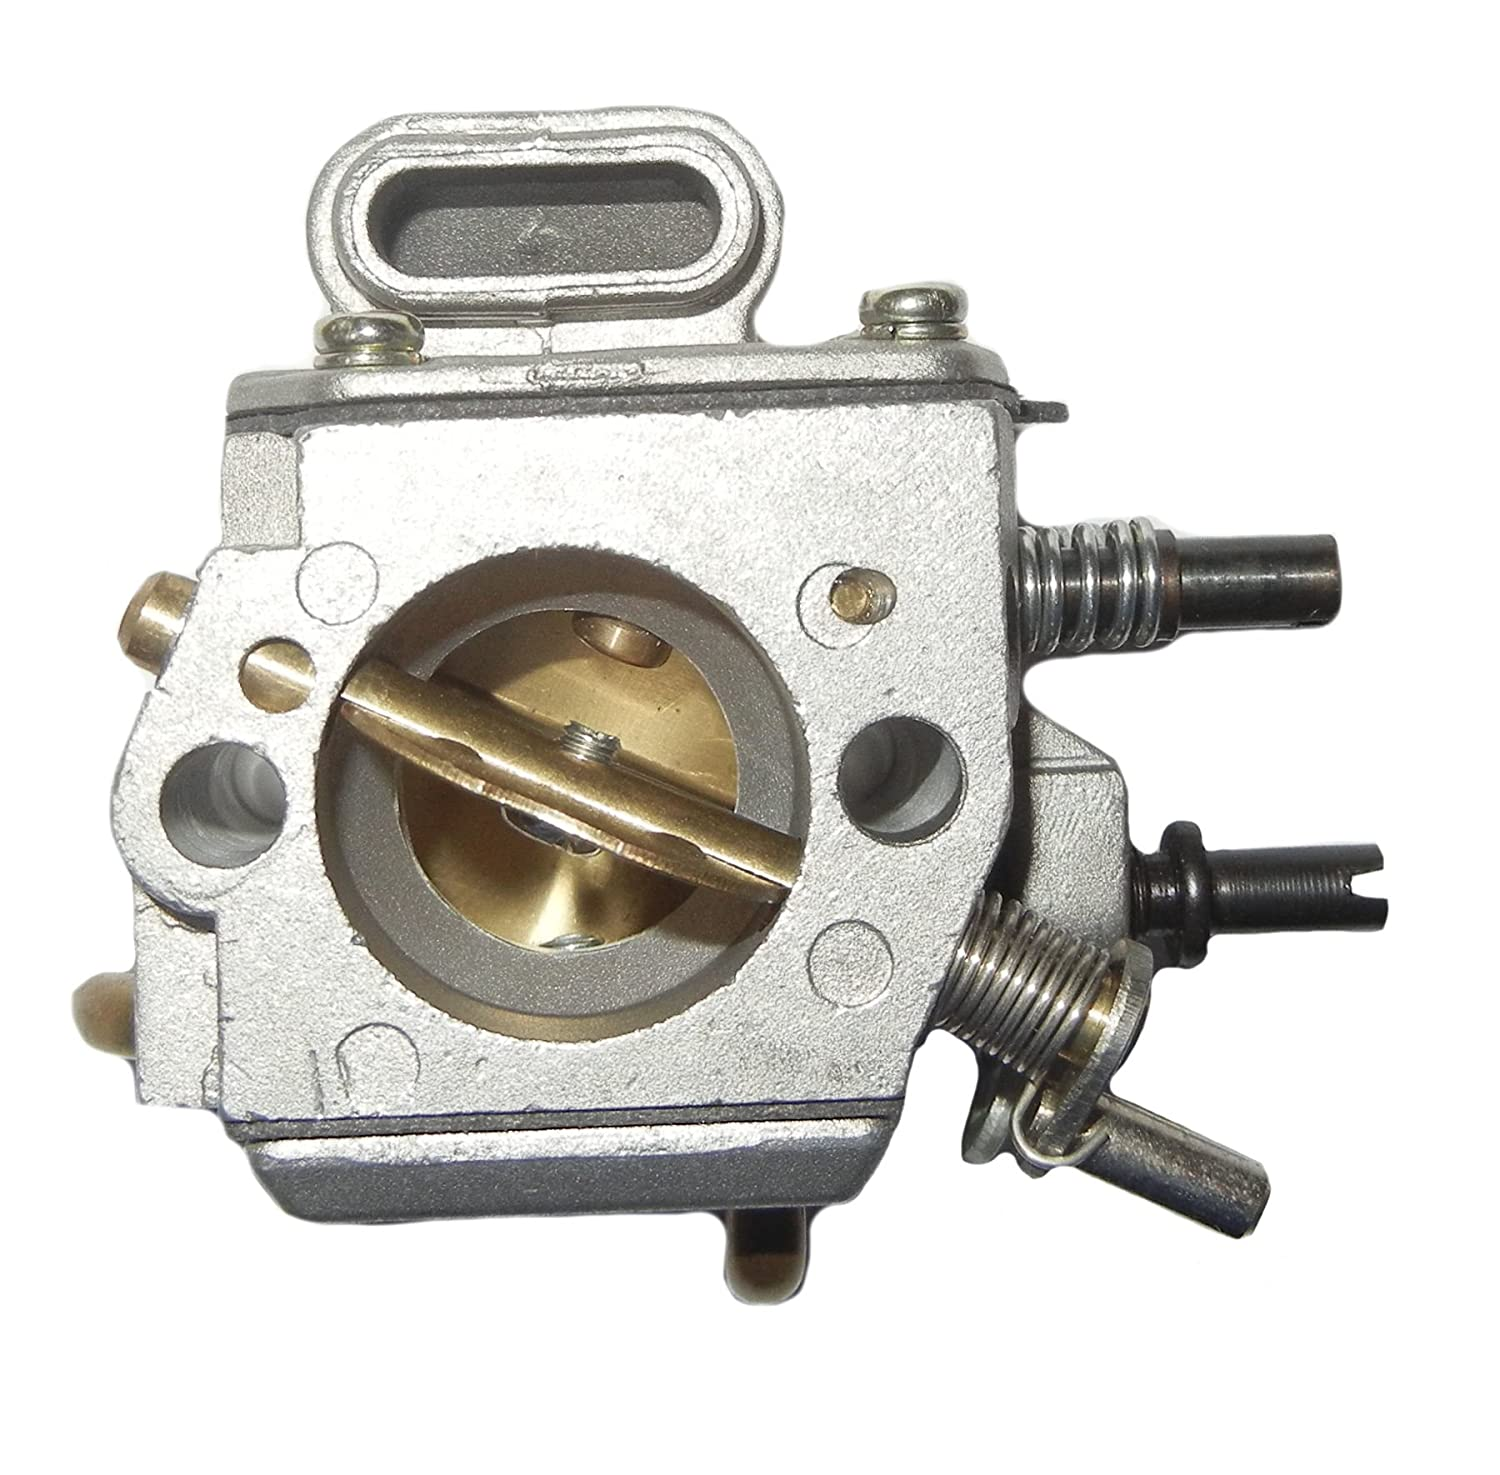 Carb Carburetor Fits Stihl 029 039 Ms290 Ms310 Ms390 Gas Lawn Mower Linkage Diagram Images Femalecelebrity Also Mtd Chainsaw Garden Outdoor